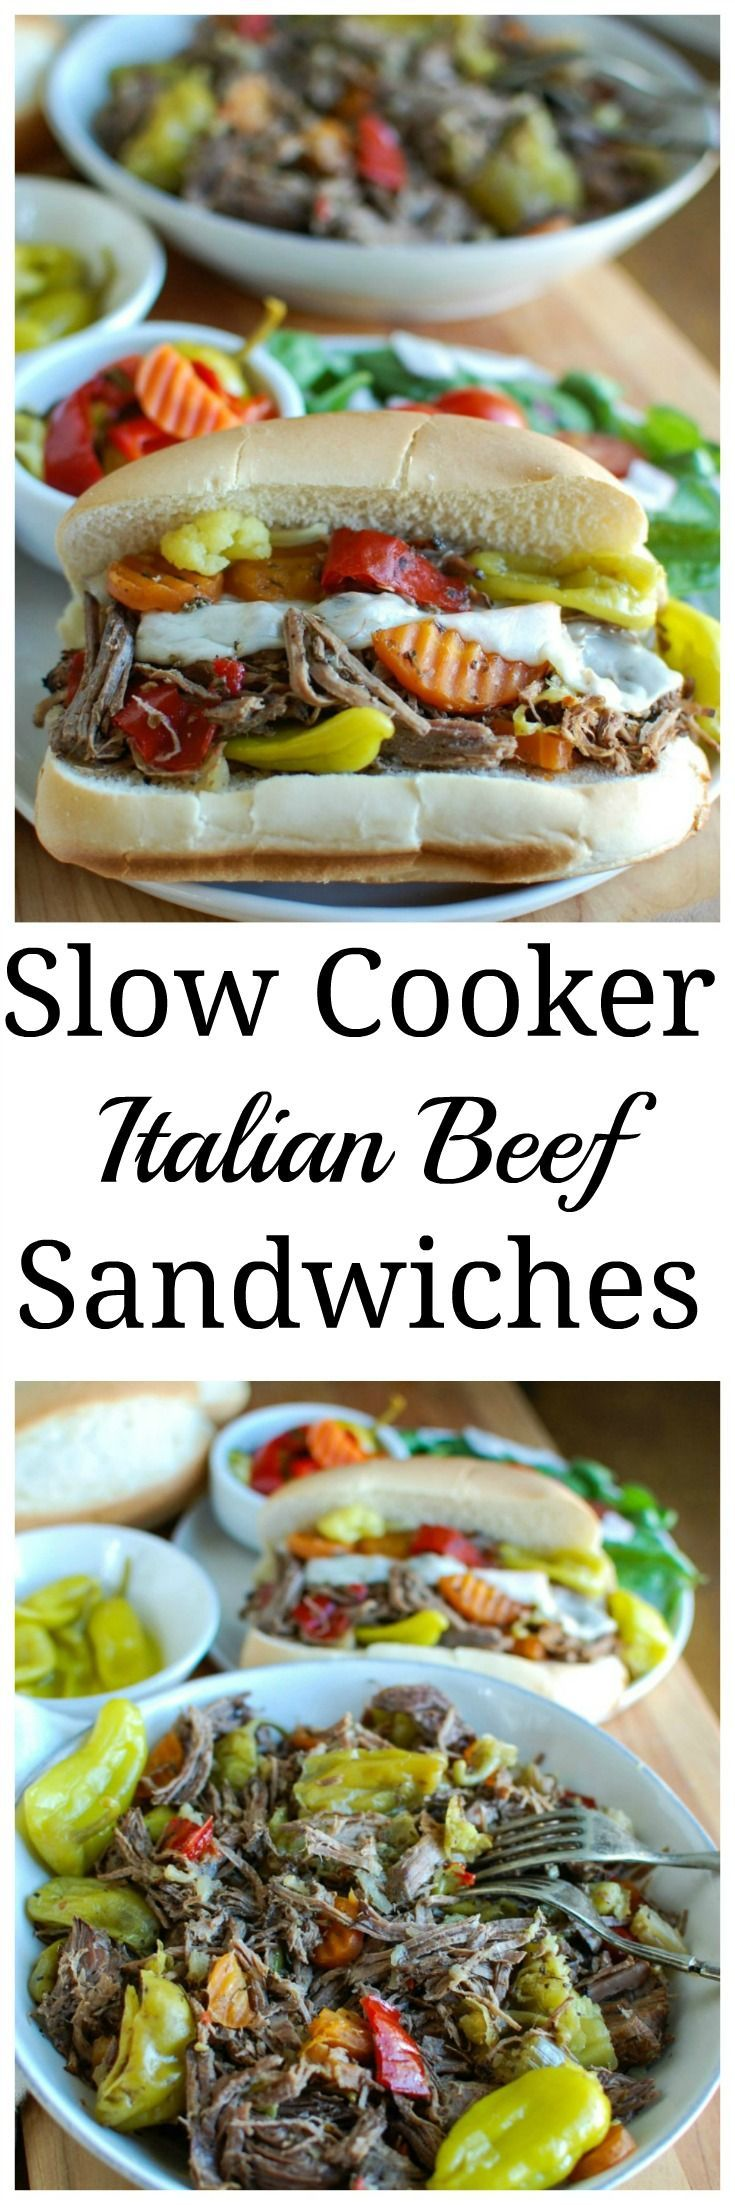 Slow Cooker Italian Beef Sandwiches make a great game day food or weeknight dinner that easily cooks in your crockpot.  Chuck roast is slowly cooked in Italian seasonings, beef broth and mixed with pepperoncini peppers and Giardiniera. Toast the beef in a hoagie bun with provolone cheese and extra pepperoncini and Giardiniera for the perfect sandwich.// A Cedar Spoon